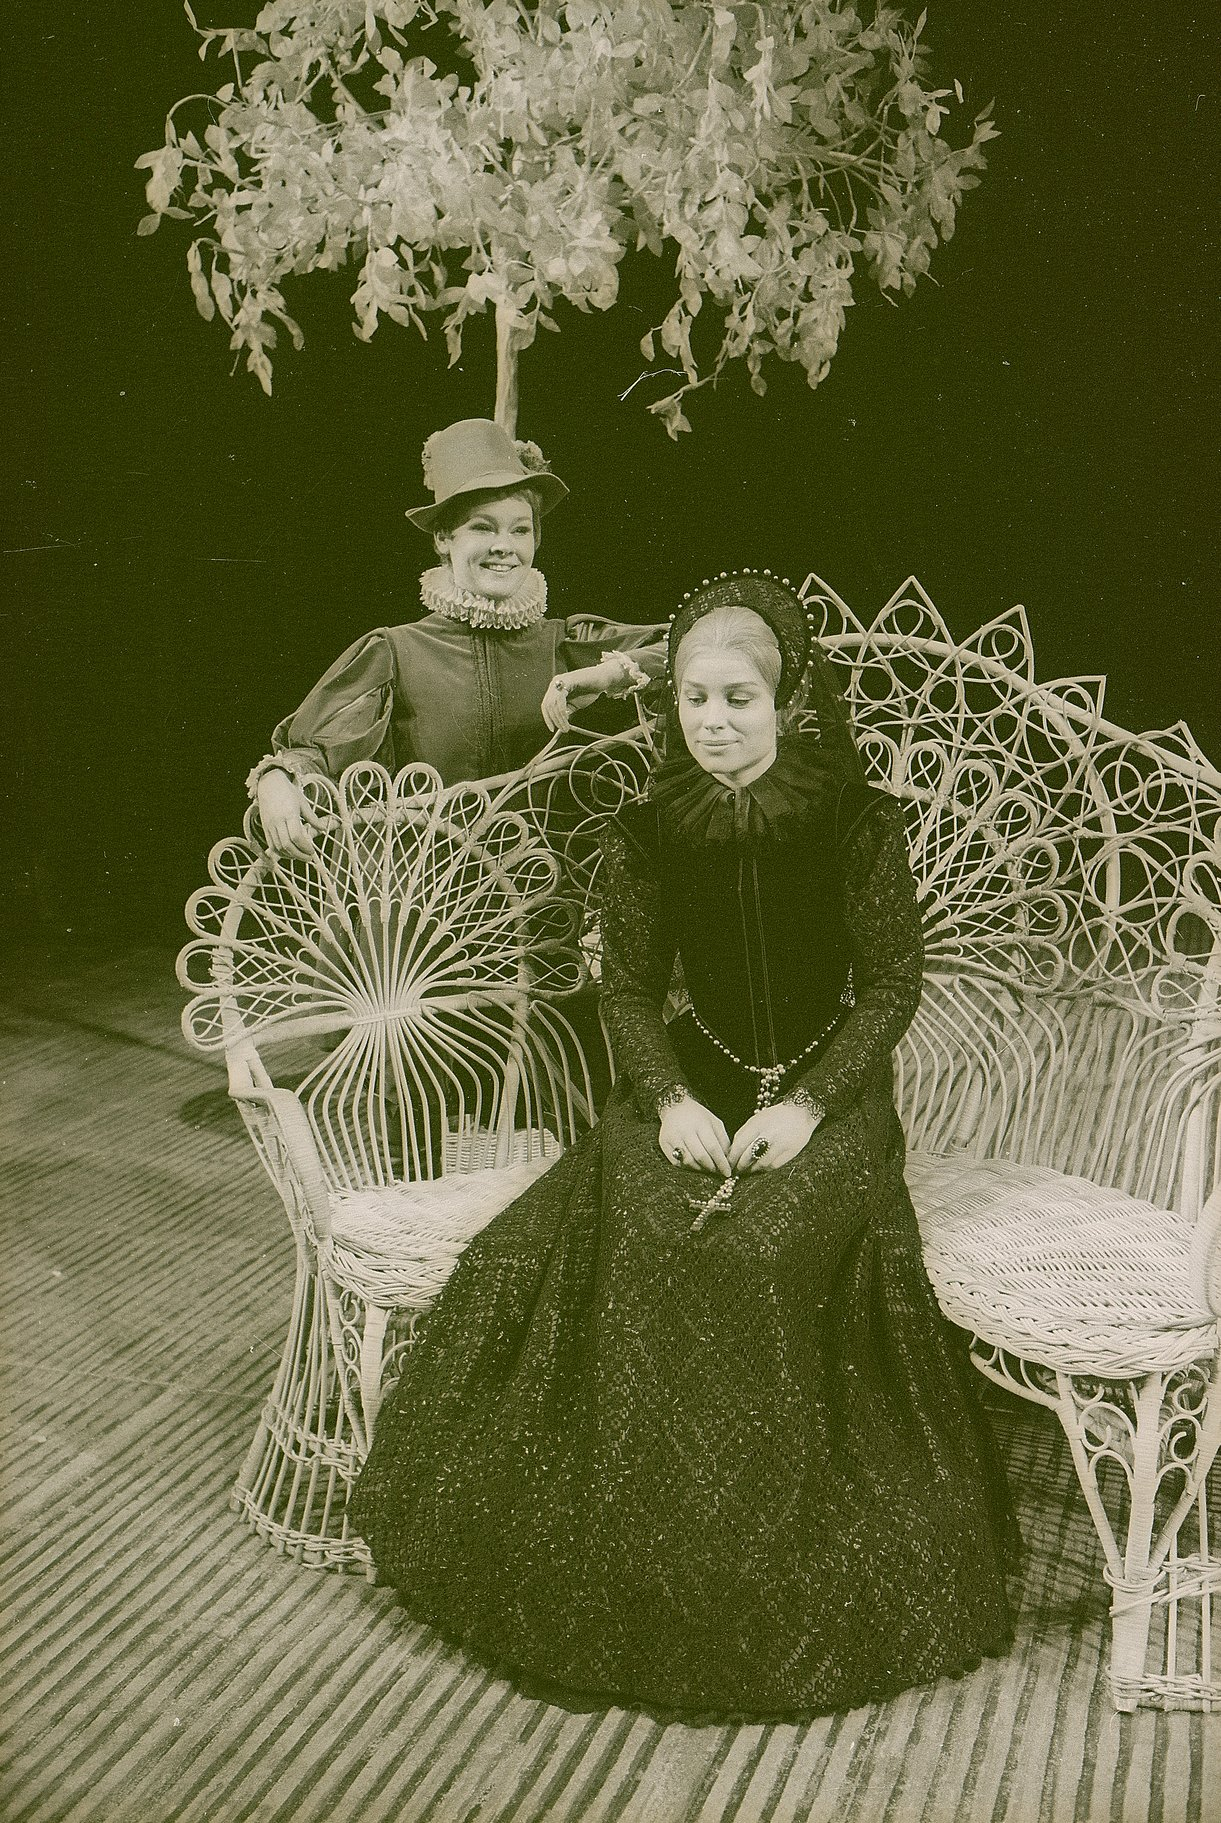 Olivia sittiing on an elaborate bench. Cesario (played by Judi Dench) stands benind the bench